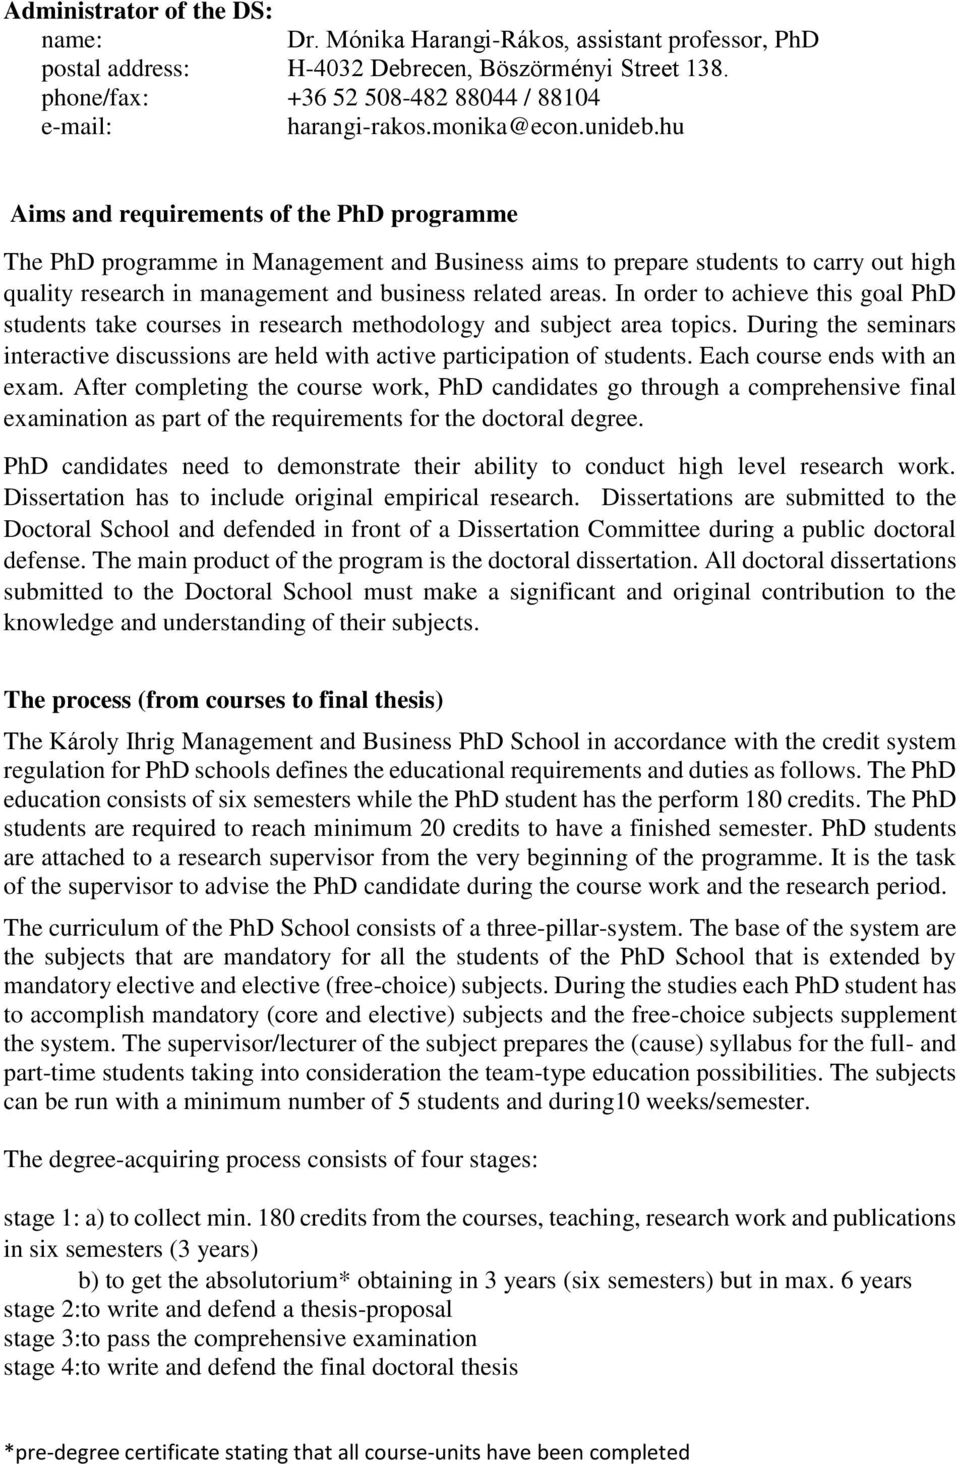 hu Aims and requirements of the PhD programme The PhD programme in Management and Business aims to prepare students to carry out high quality research in management and business related areas.